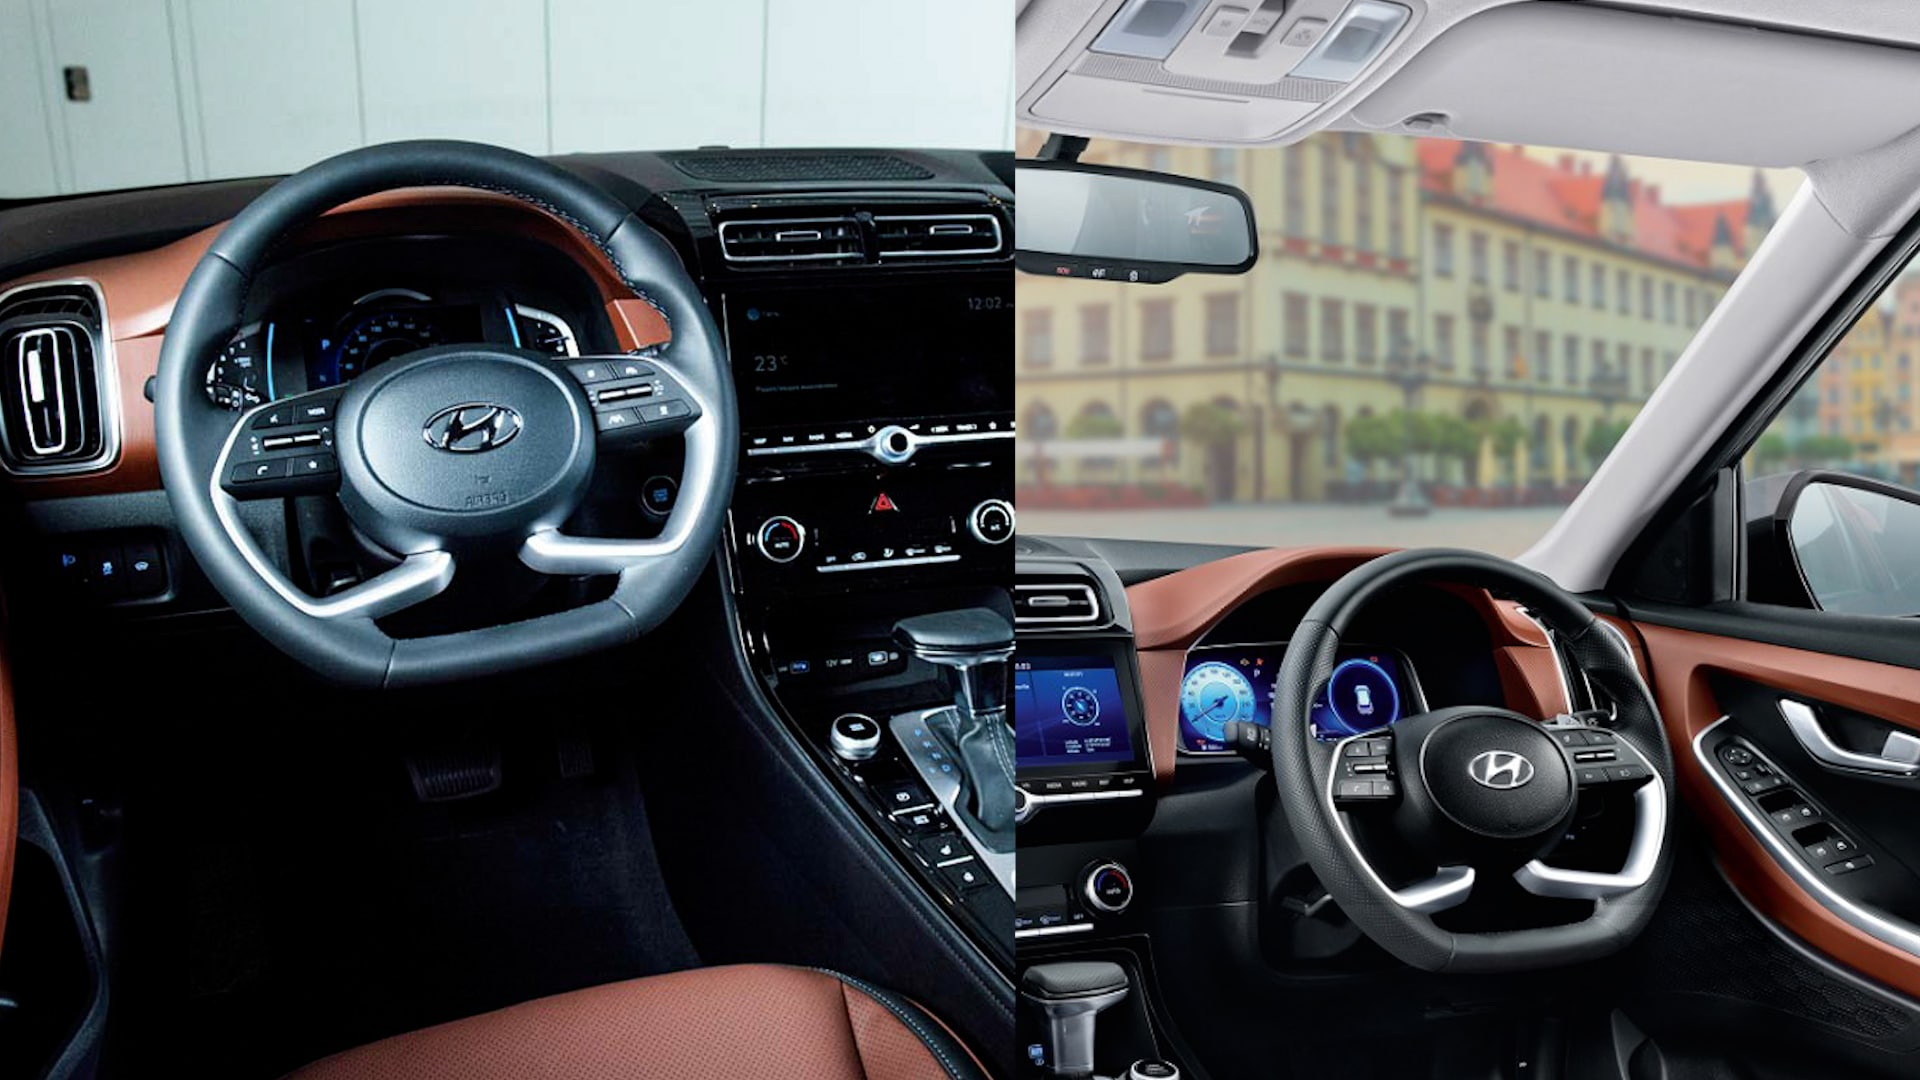 The interior of the new Creta and Alcazar also get similar treatment inside the cabin, Even the dual-tone colours offered in both SUVs appear similar. The steering wheels, AC vents, and the gearbox are identical in both the vehicles.